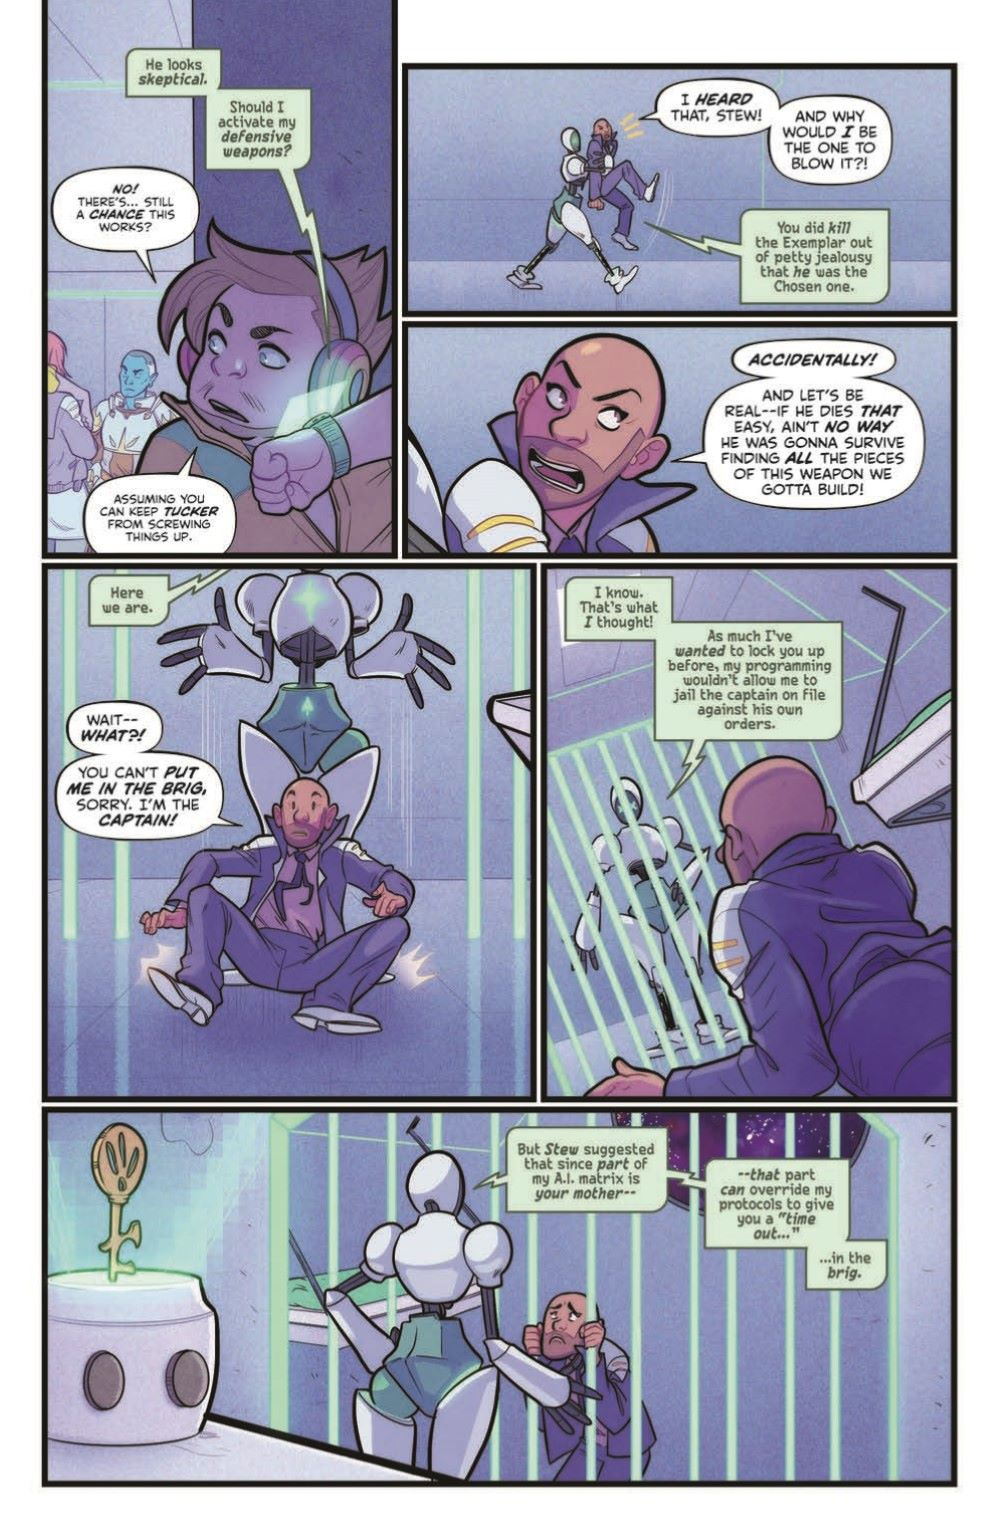 VoyageToTheStars_02-pr-6 ComicList Previews: VOYAGE TO THE STARS #3 (OF 4)